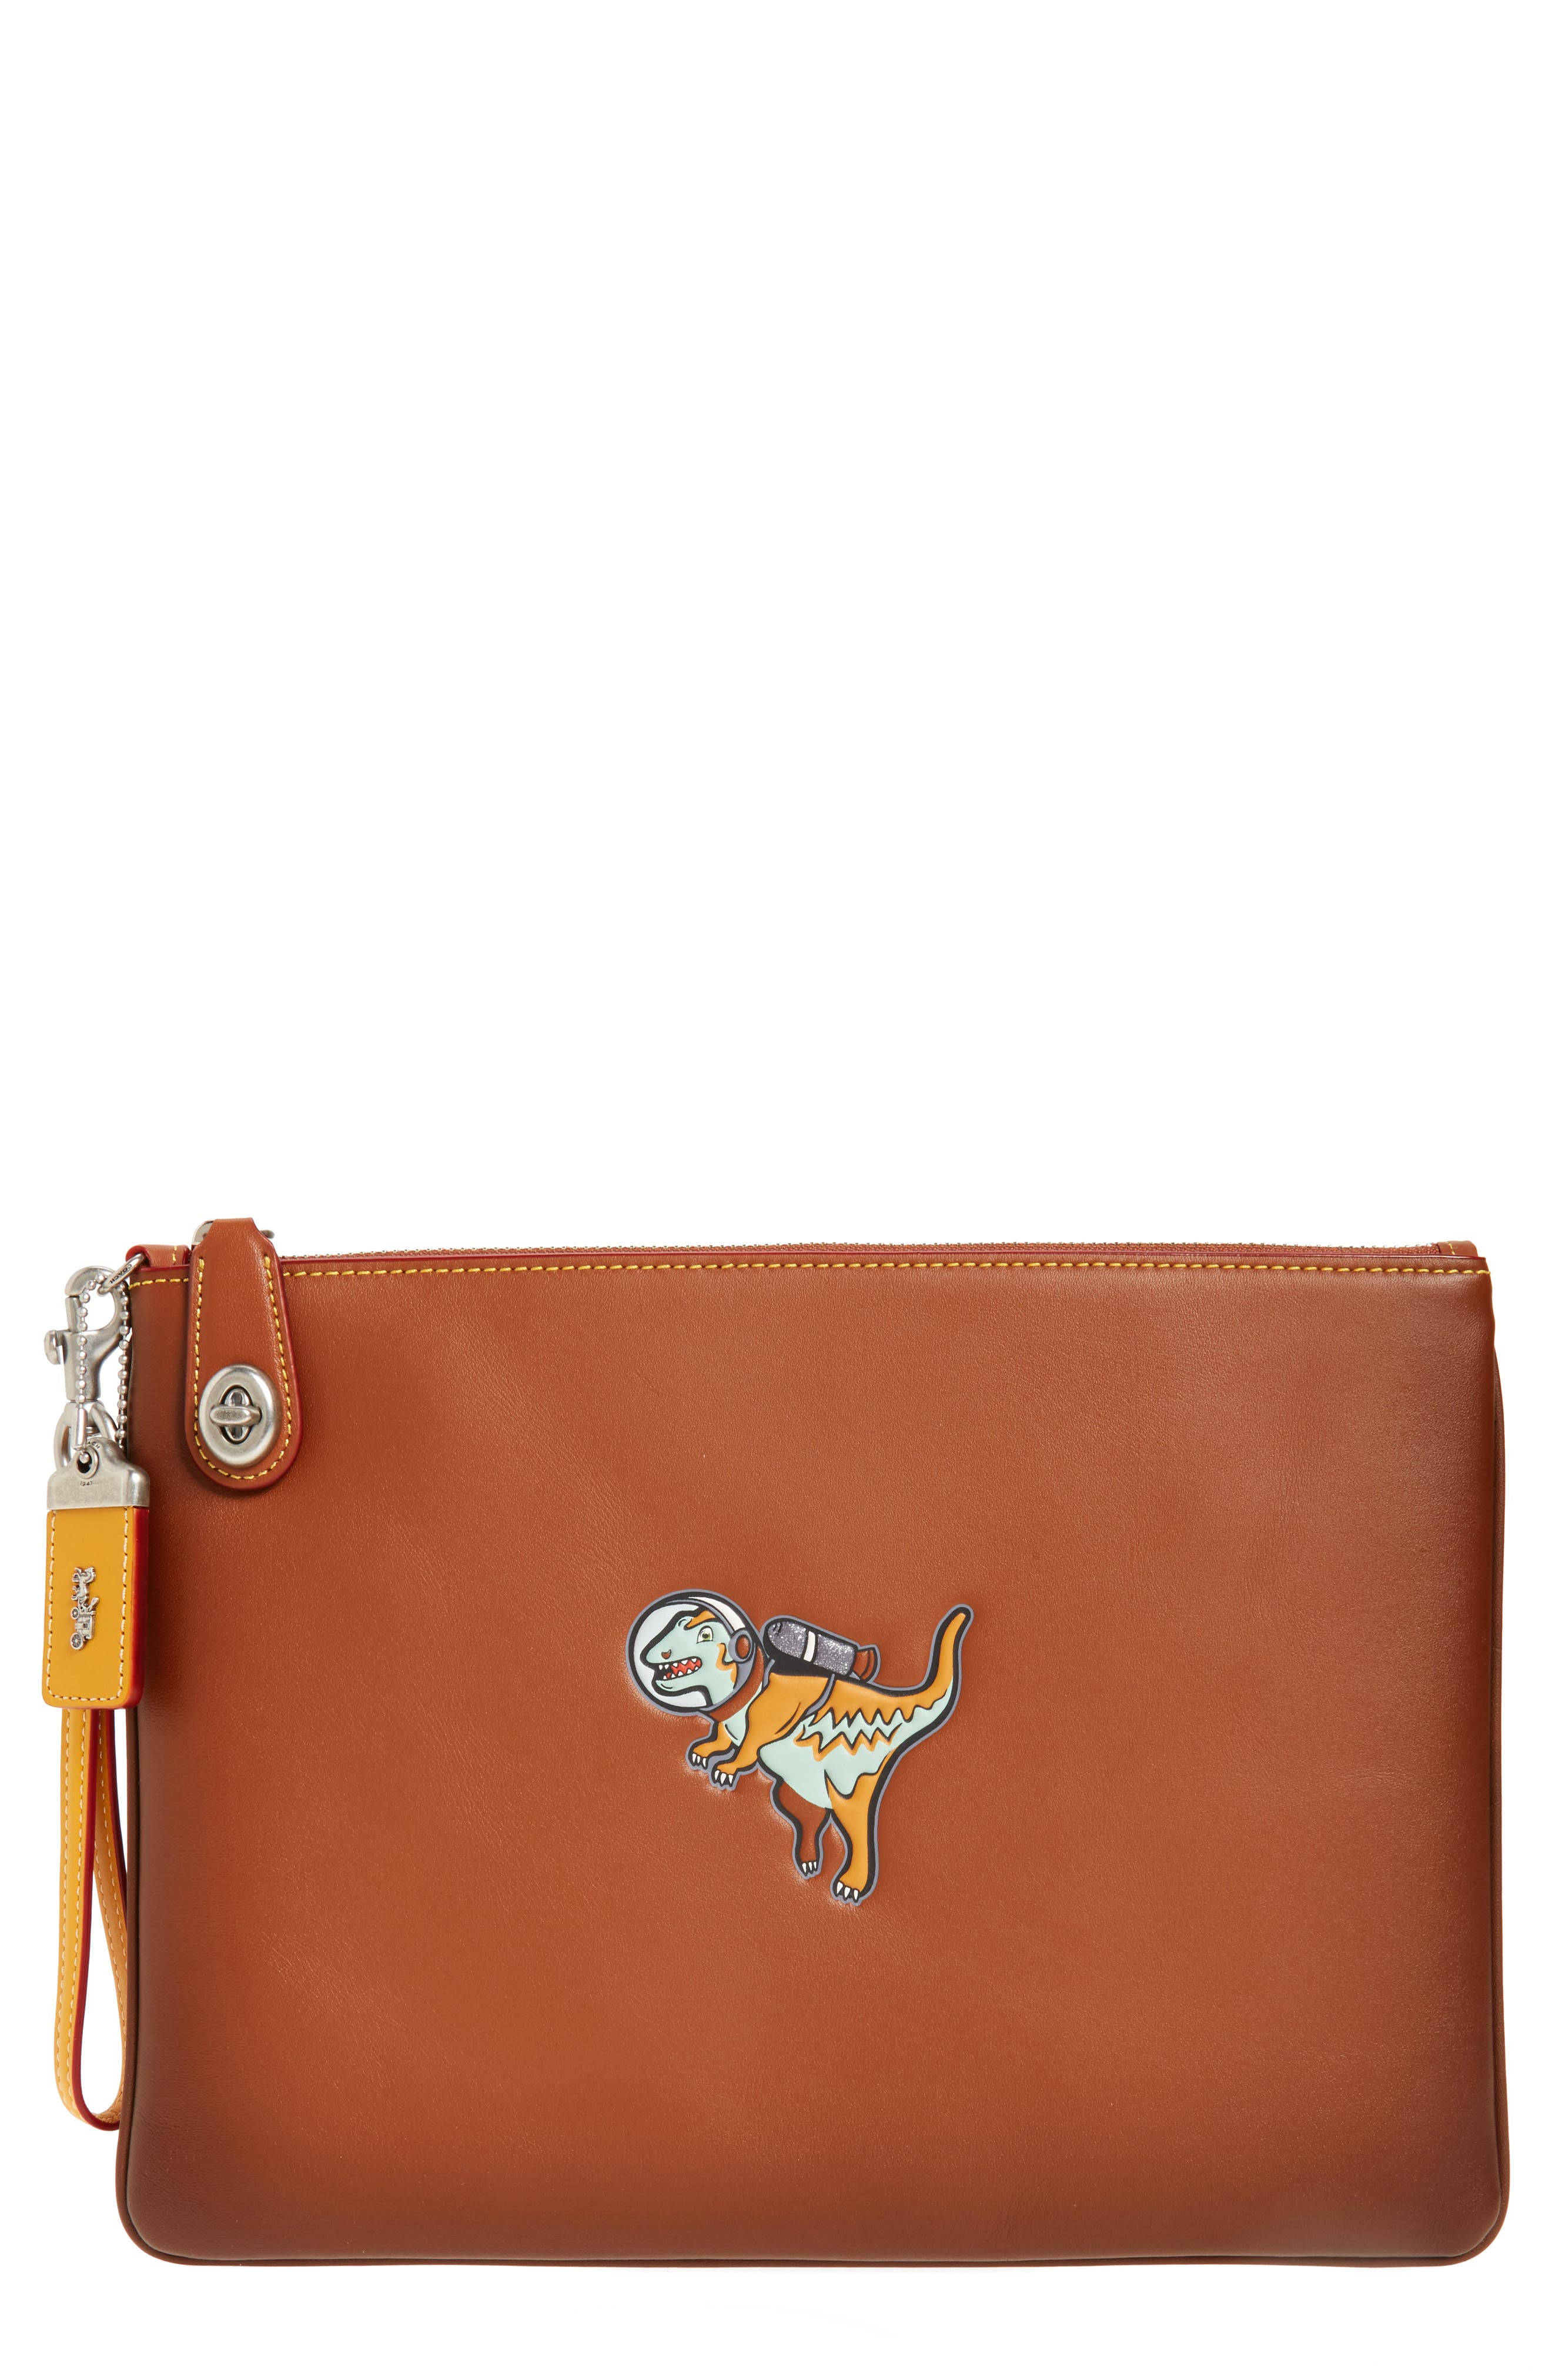 COACH 1941 Rexy Leather Wristlet